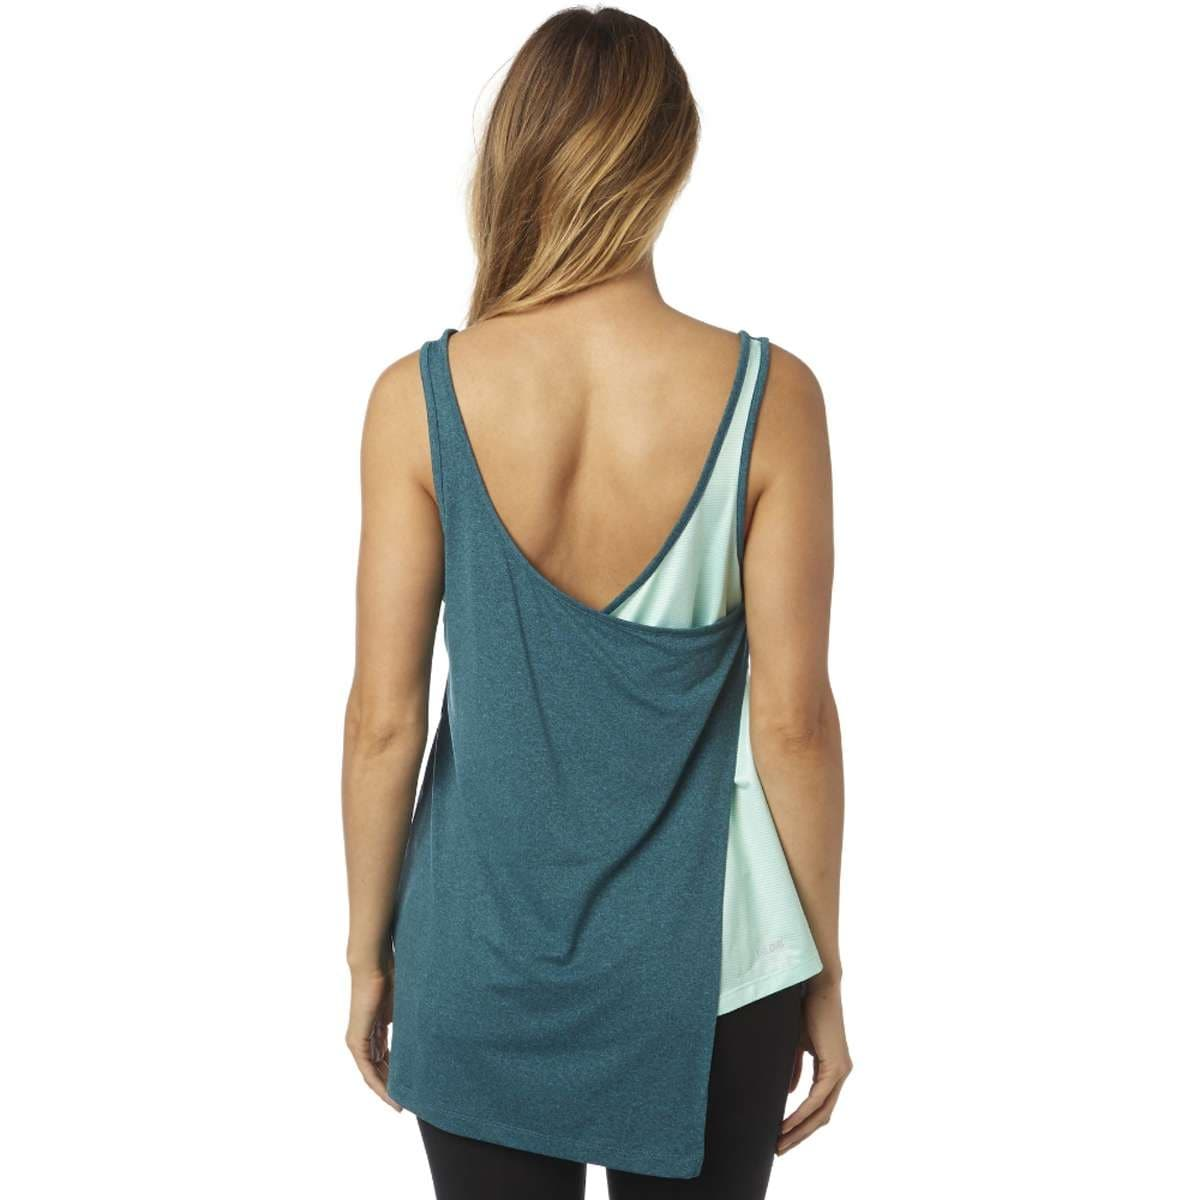 e329a3f1 Shop Fox Racing 2017 Women's Integrate Tank - 18564 - Free Shipping On  Orders Over $45 - Overstock - 17903050